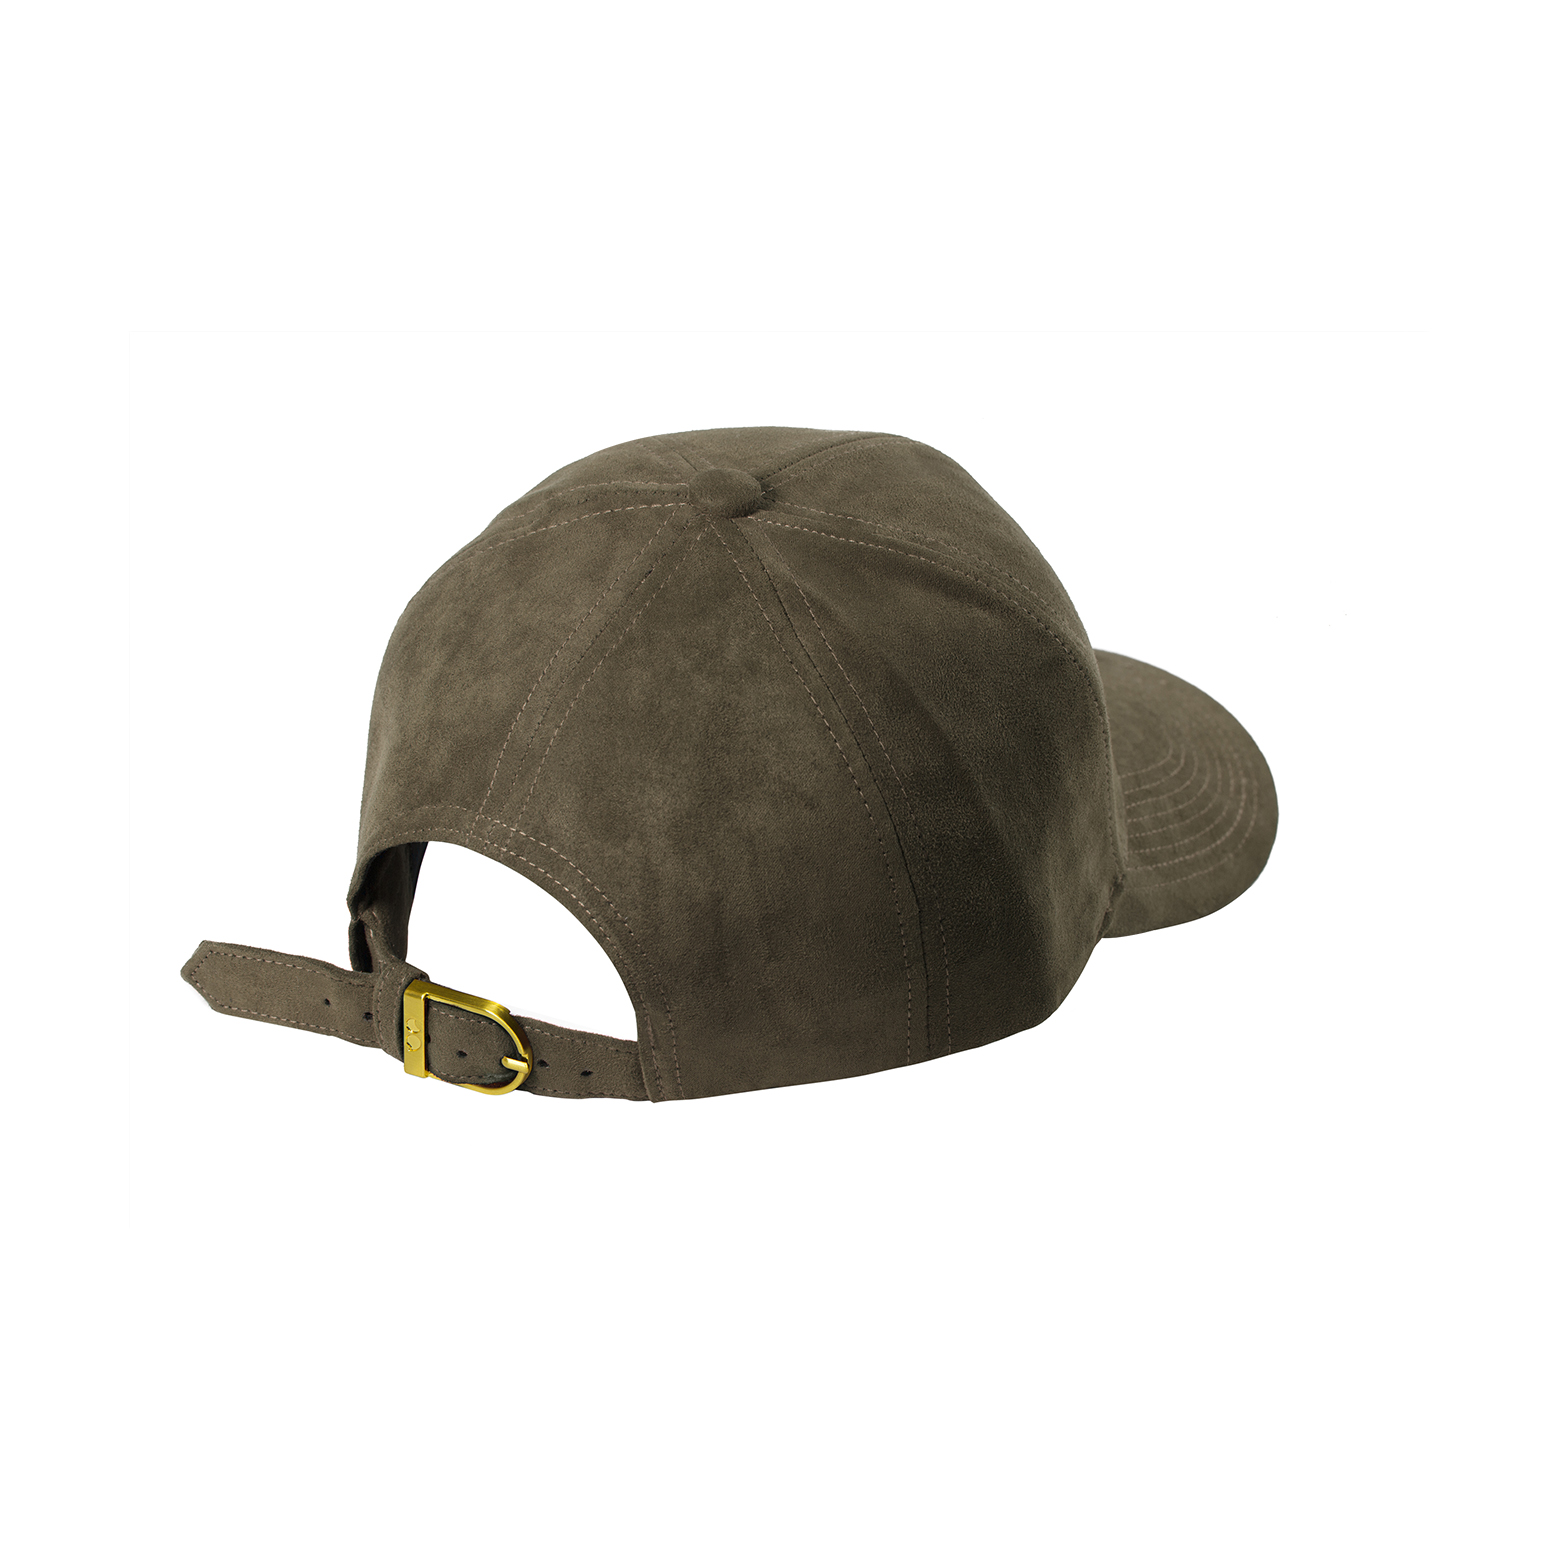 BASEBALL CAP TAUPE SUEDE BACK SIDE